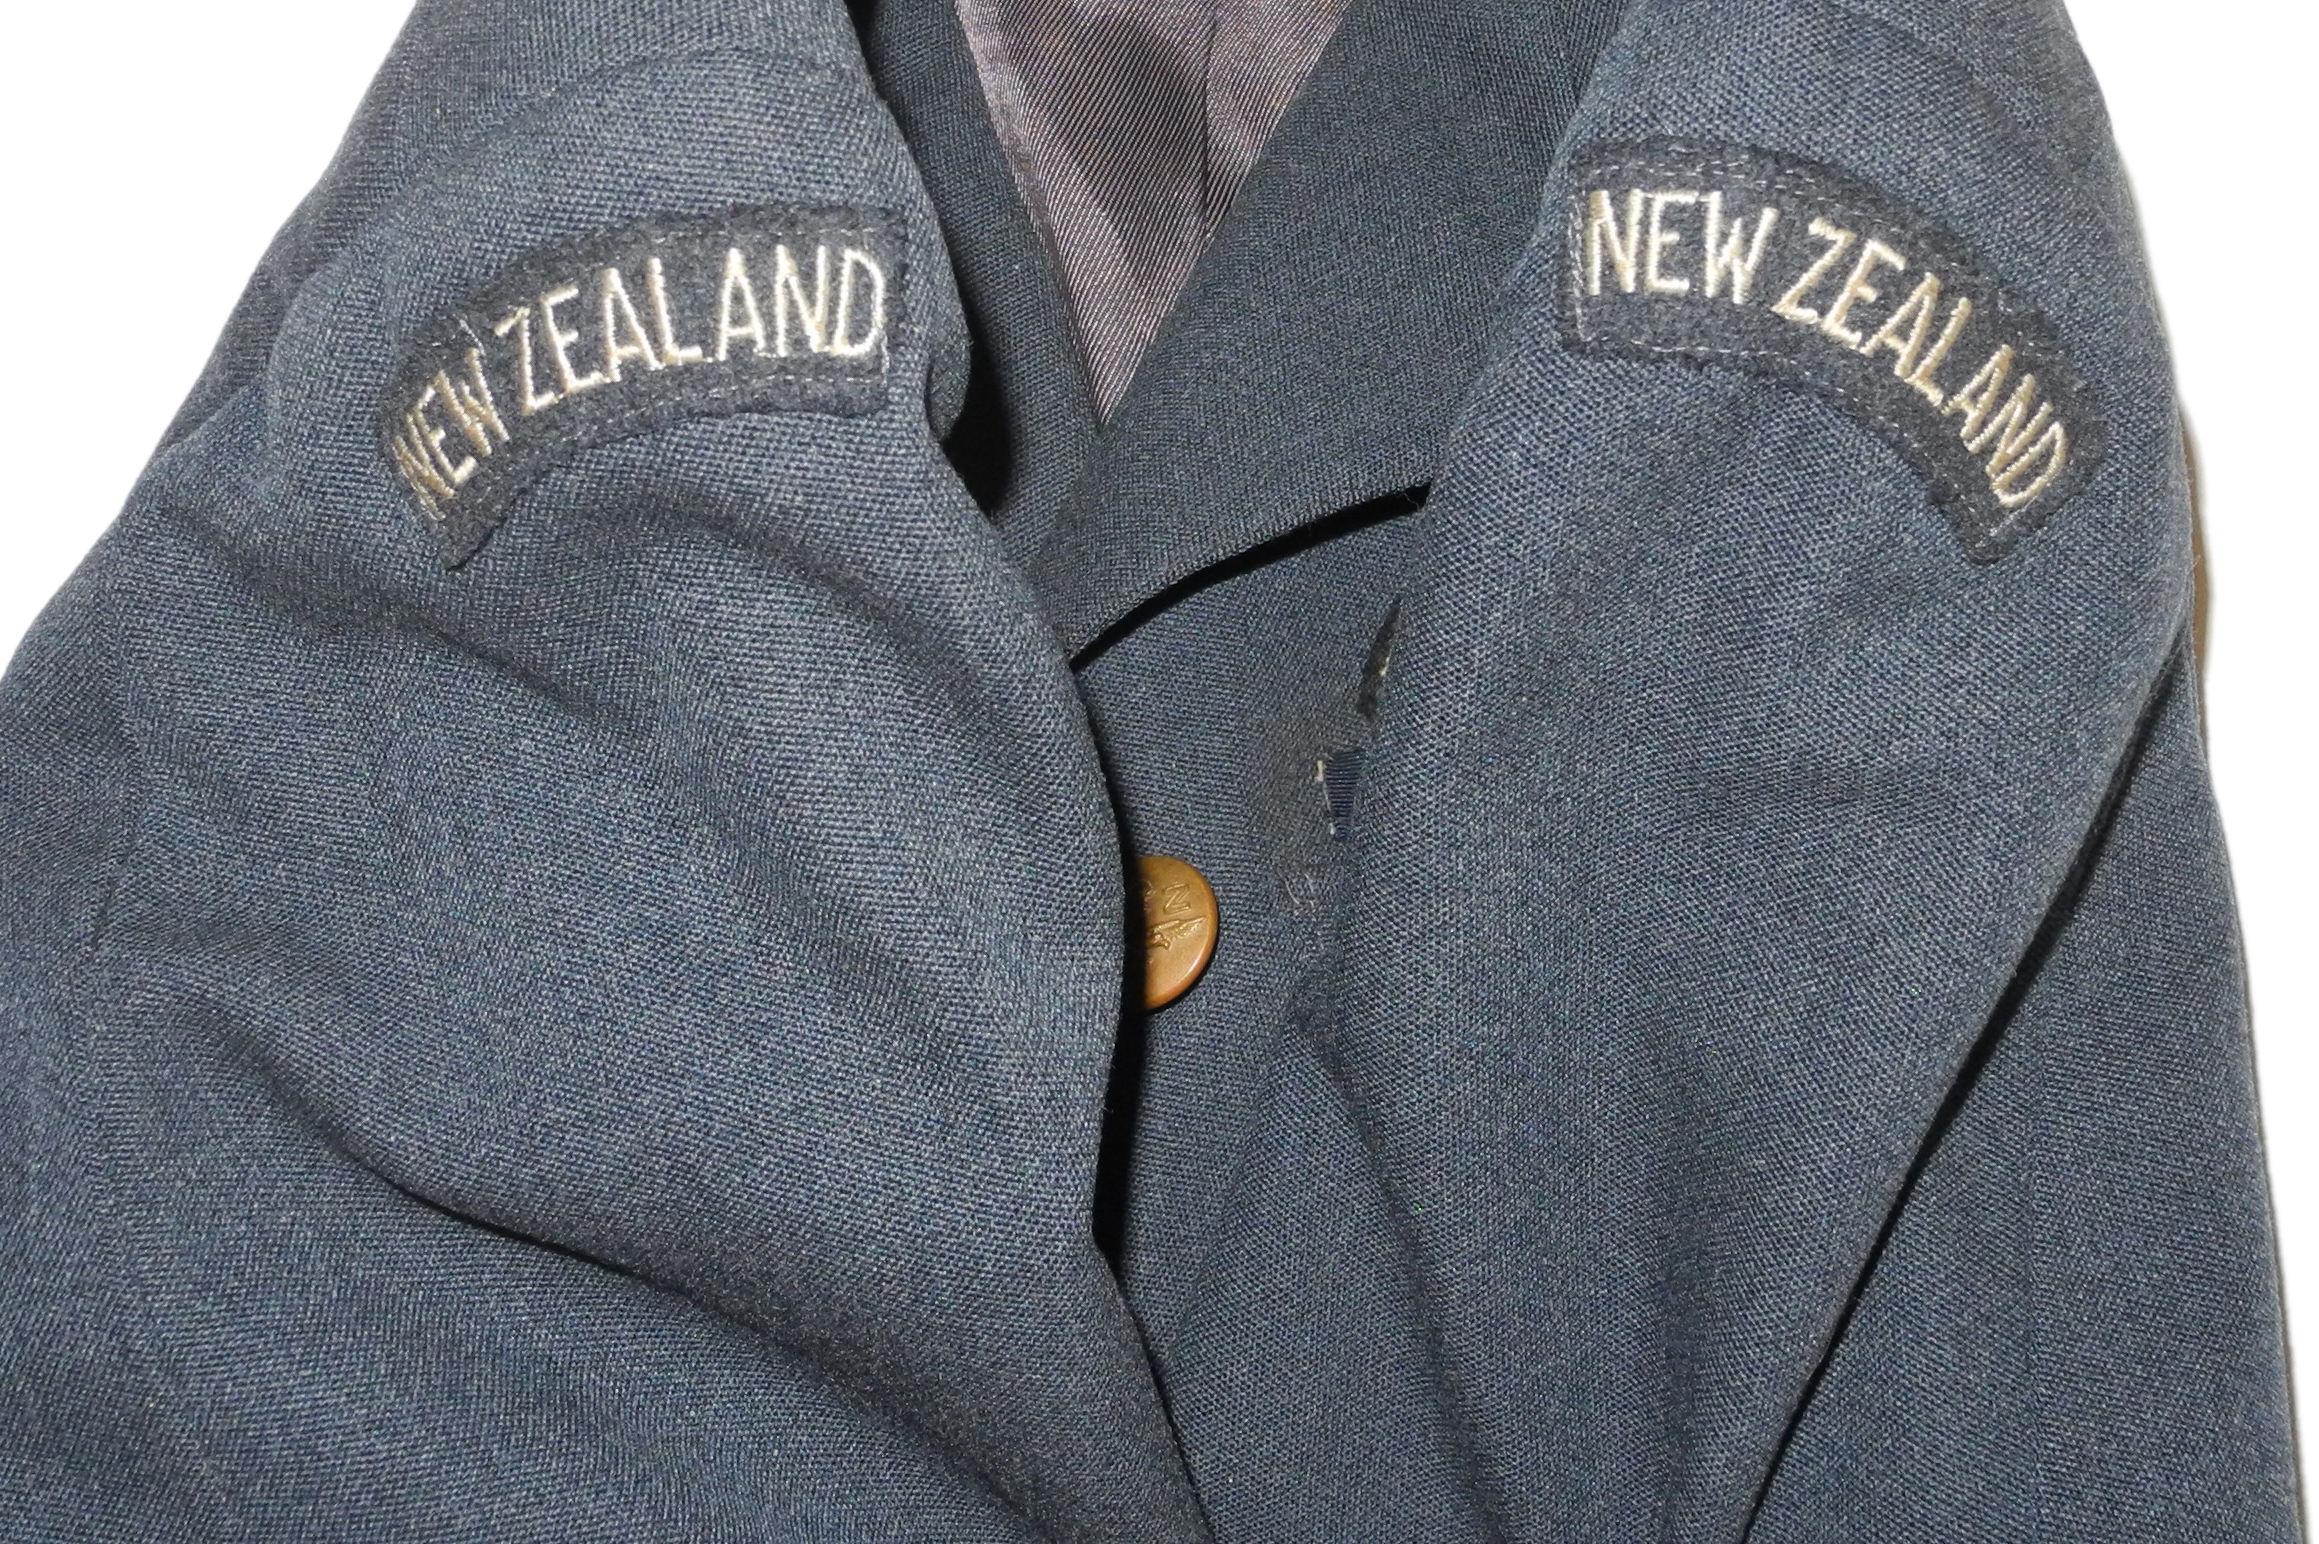 RNZAF officer's SD tunic